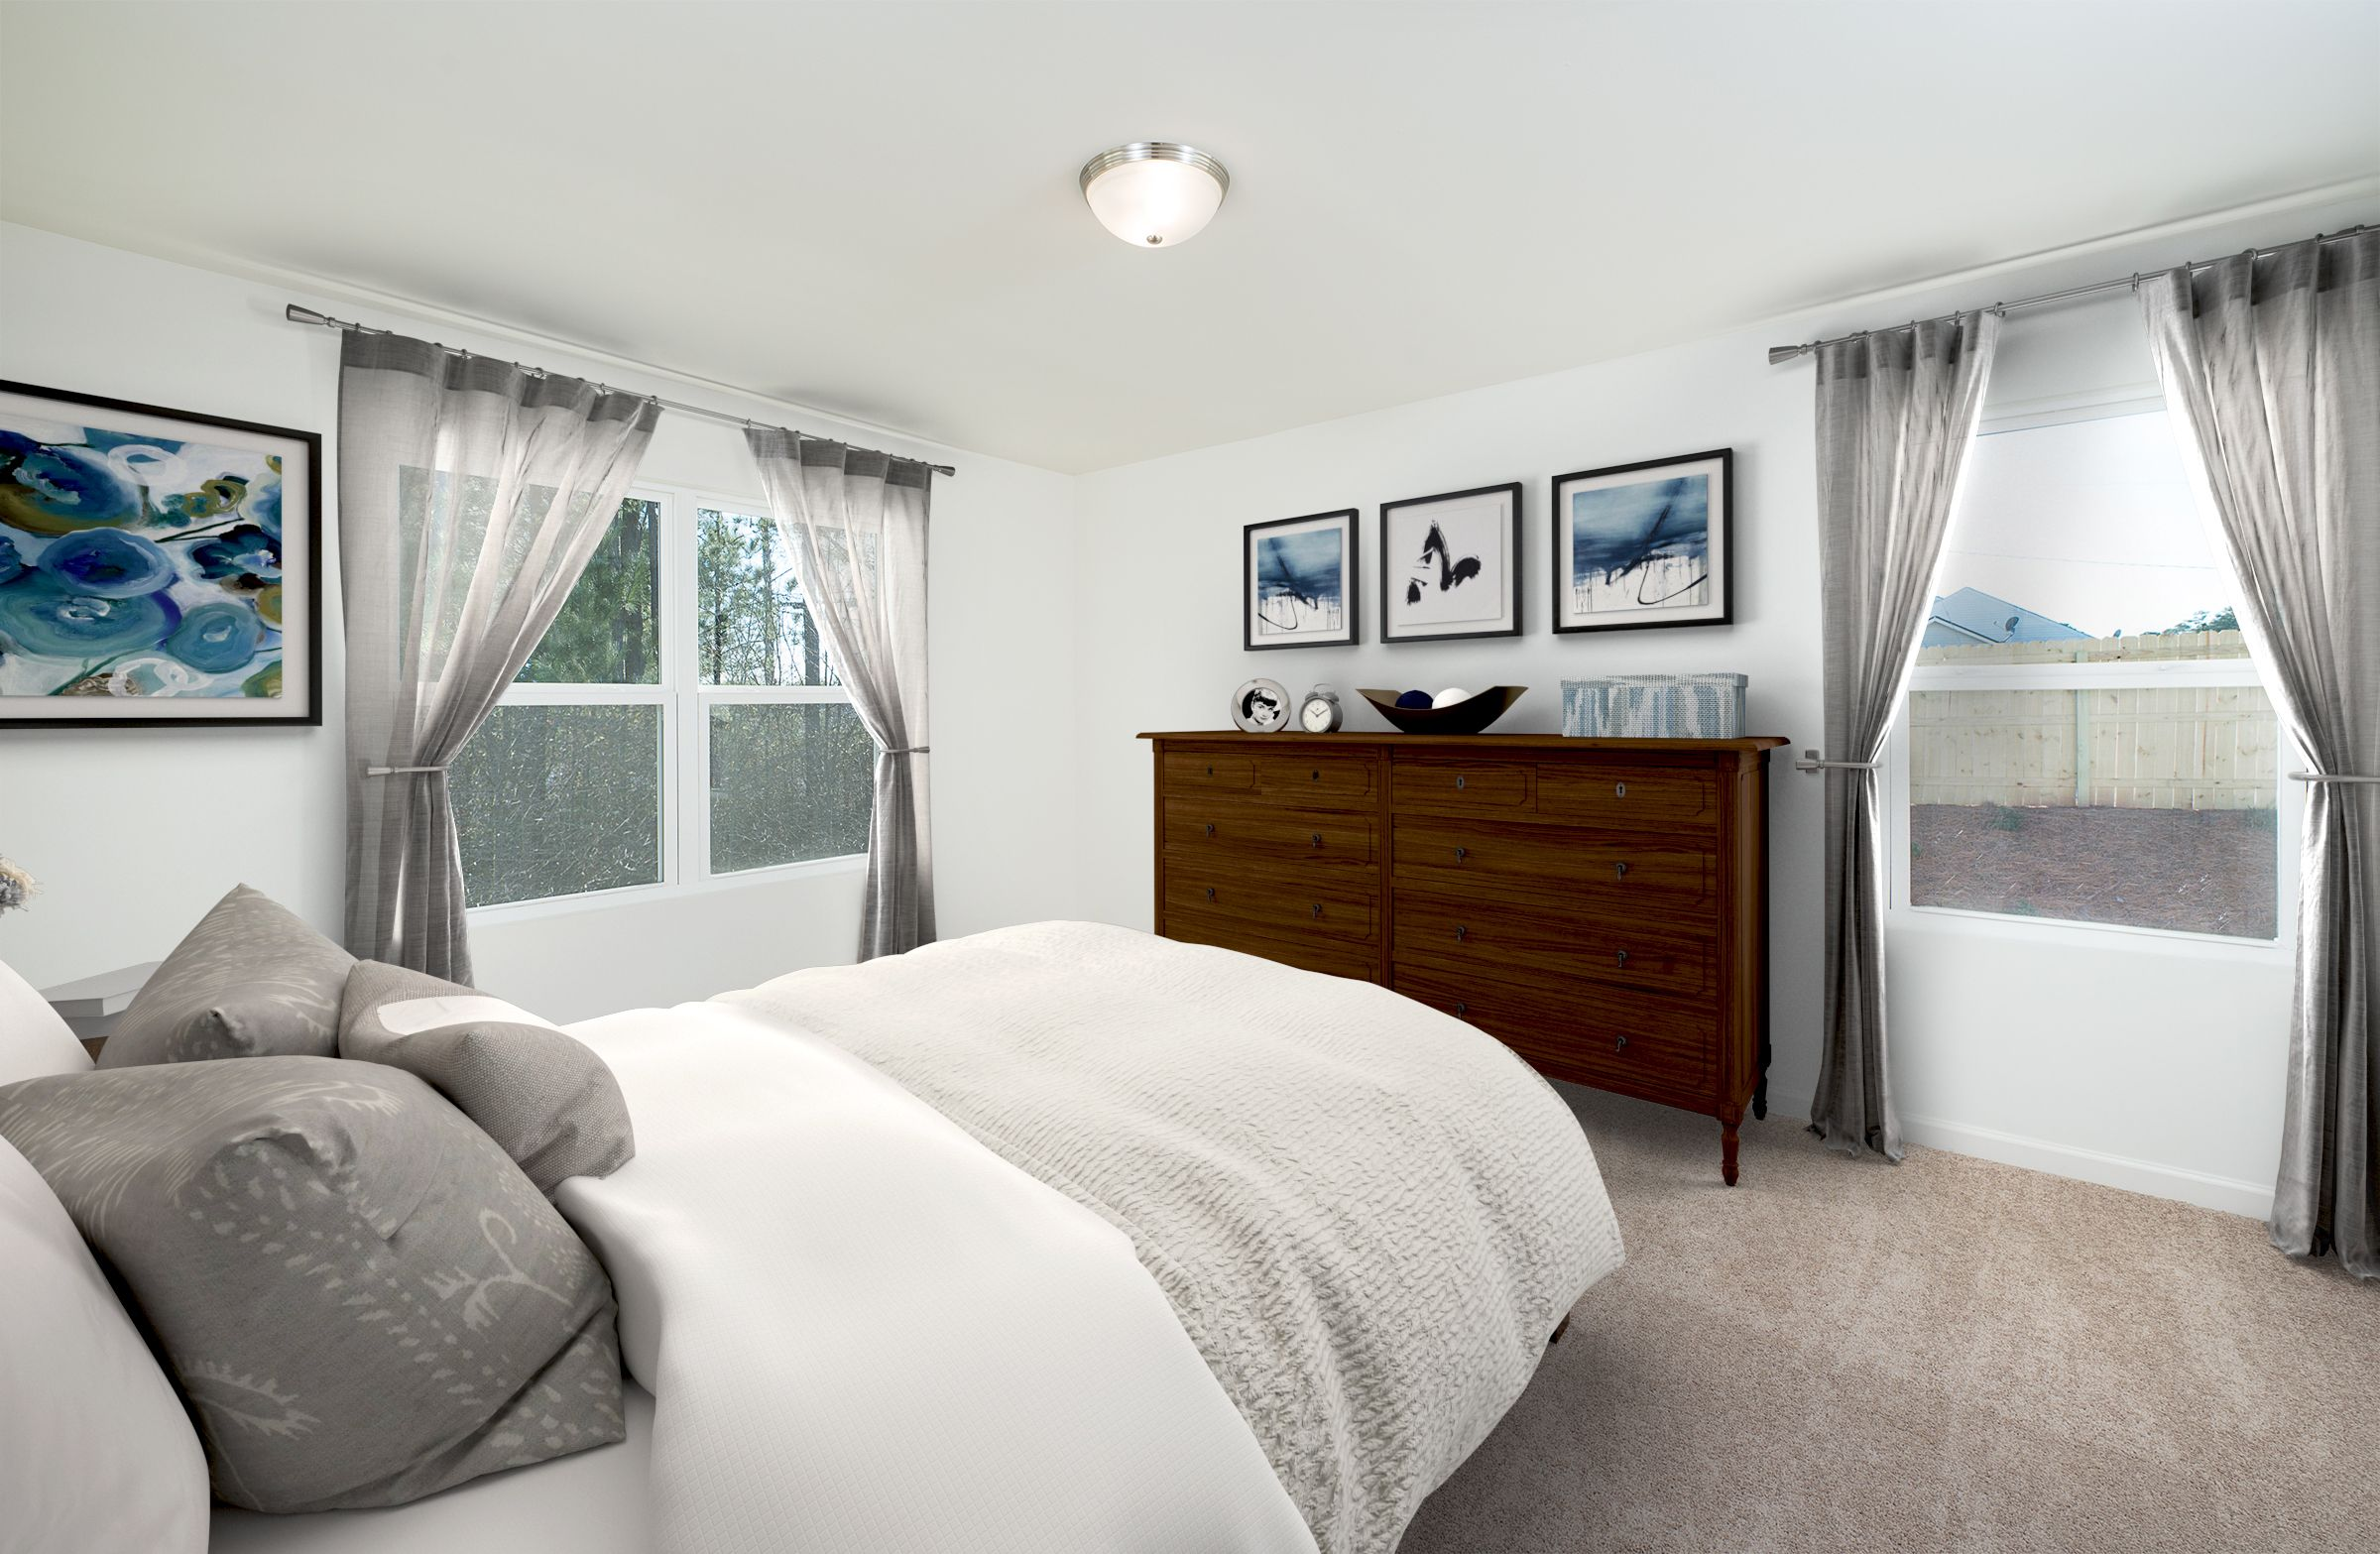 Bedroom featured in the Nebula By Starlight Homes in Atlanta, GA